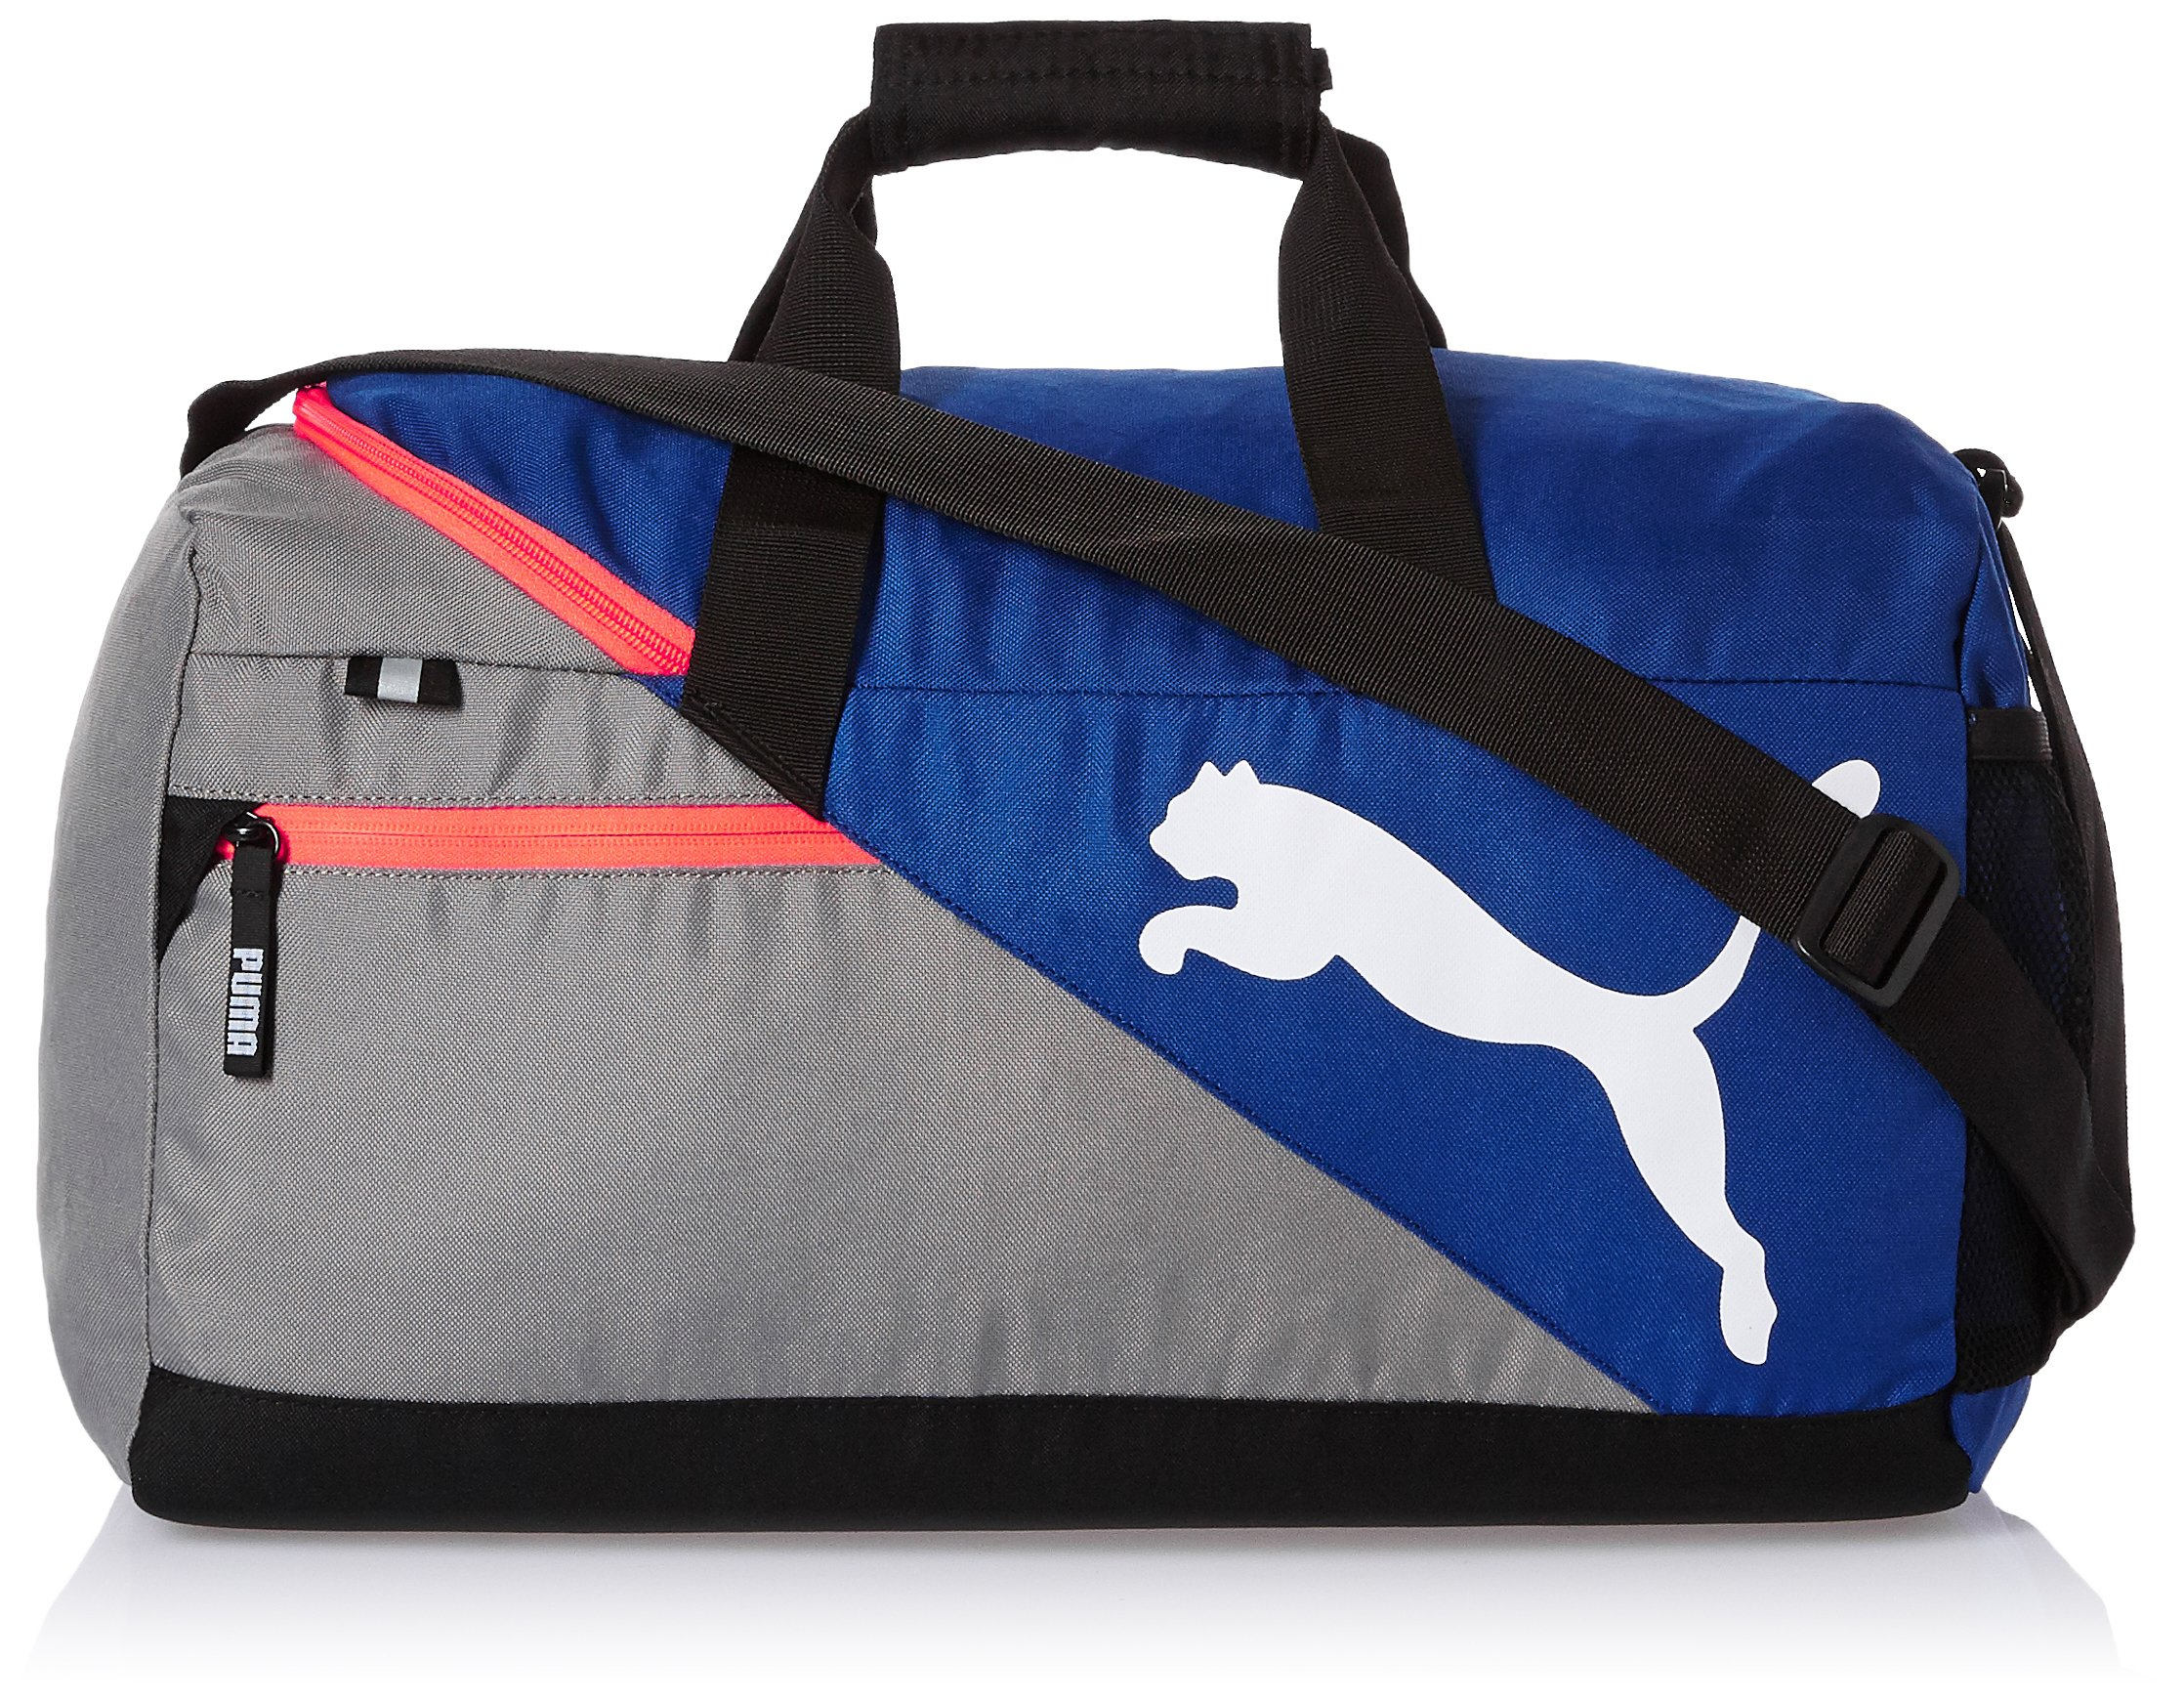 Puma Polyester Mazarine Blue and Red Blast Gym Bag (Multicolour) product image